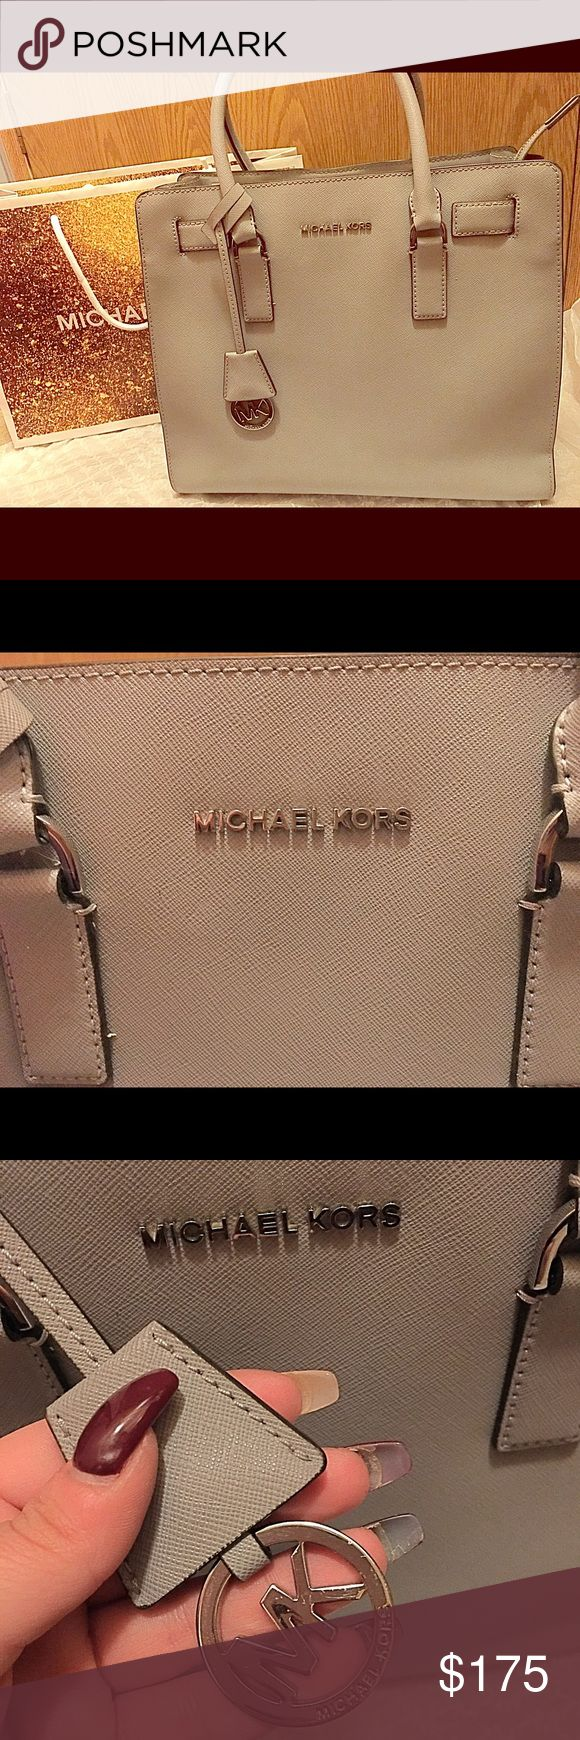 2dc34d9522696 ... clearance sized michael kors large dillon satchel 0f253 7dd7f